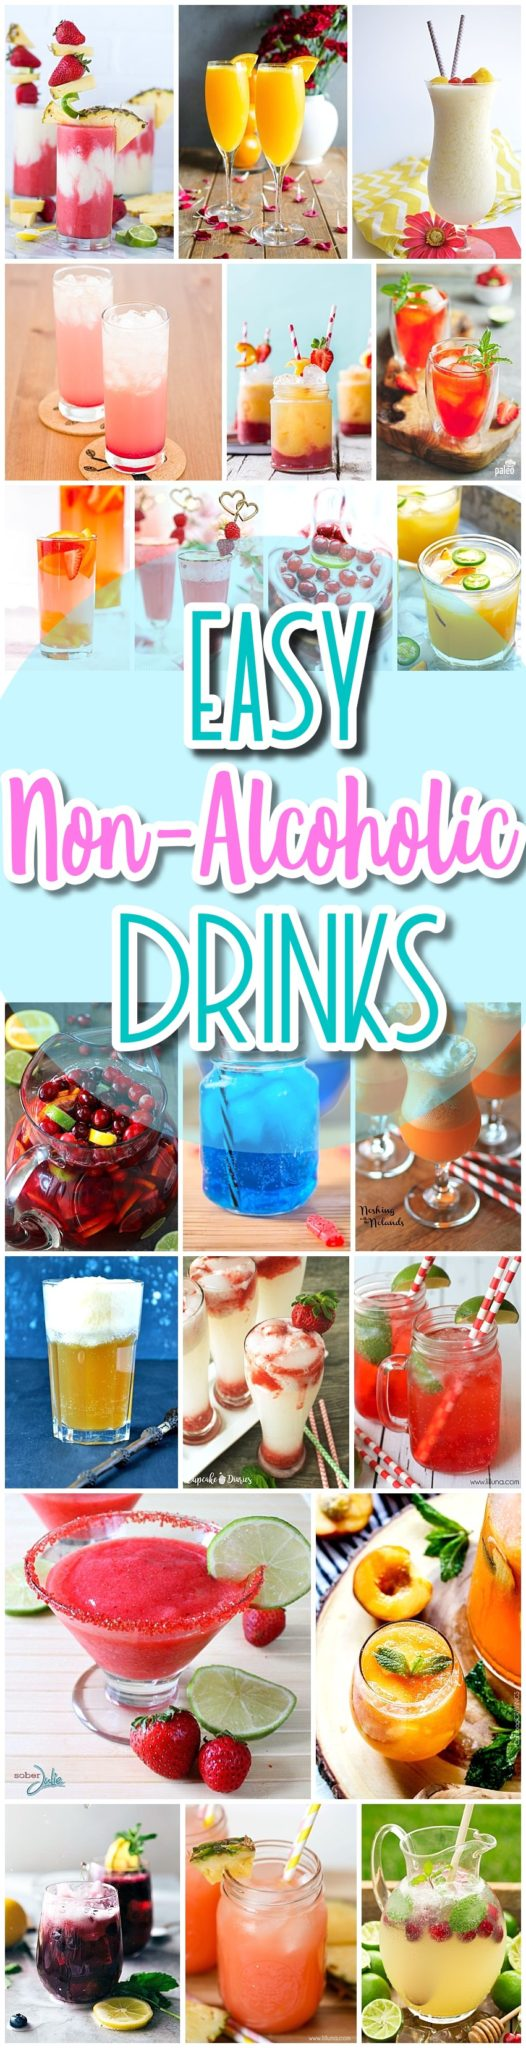 Best easy alcoholic drink recipes